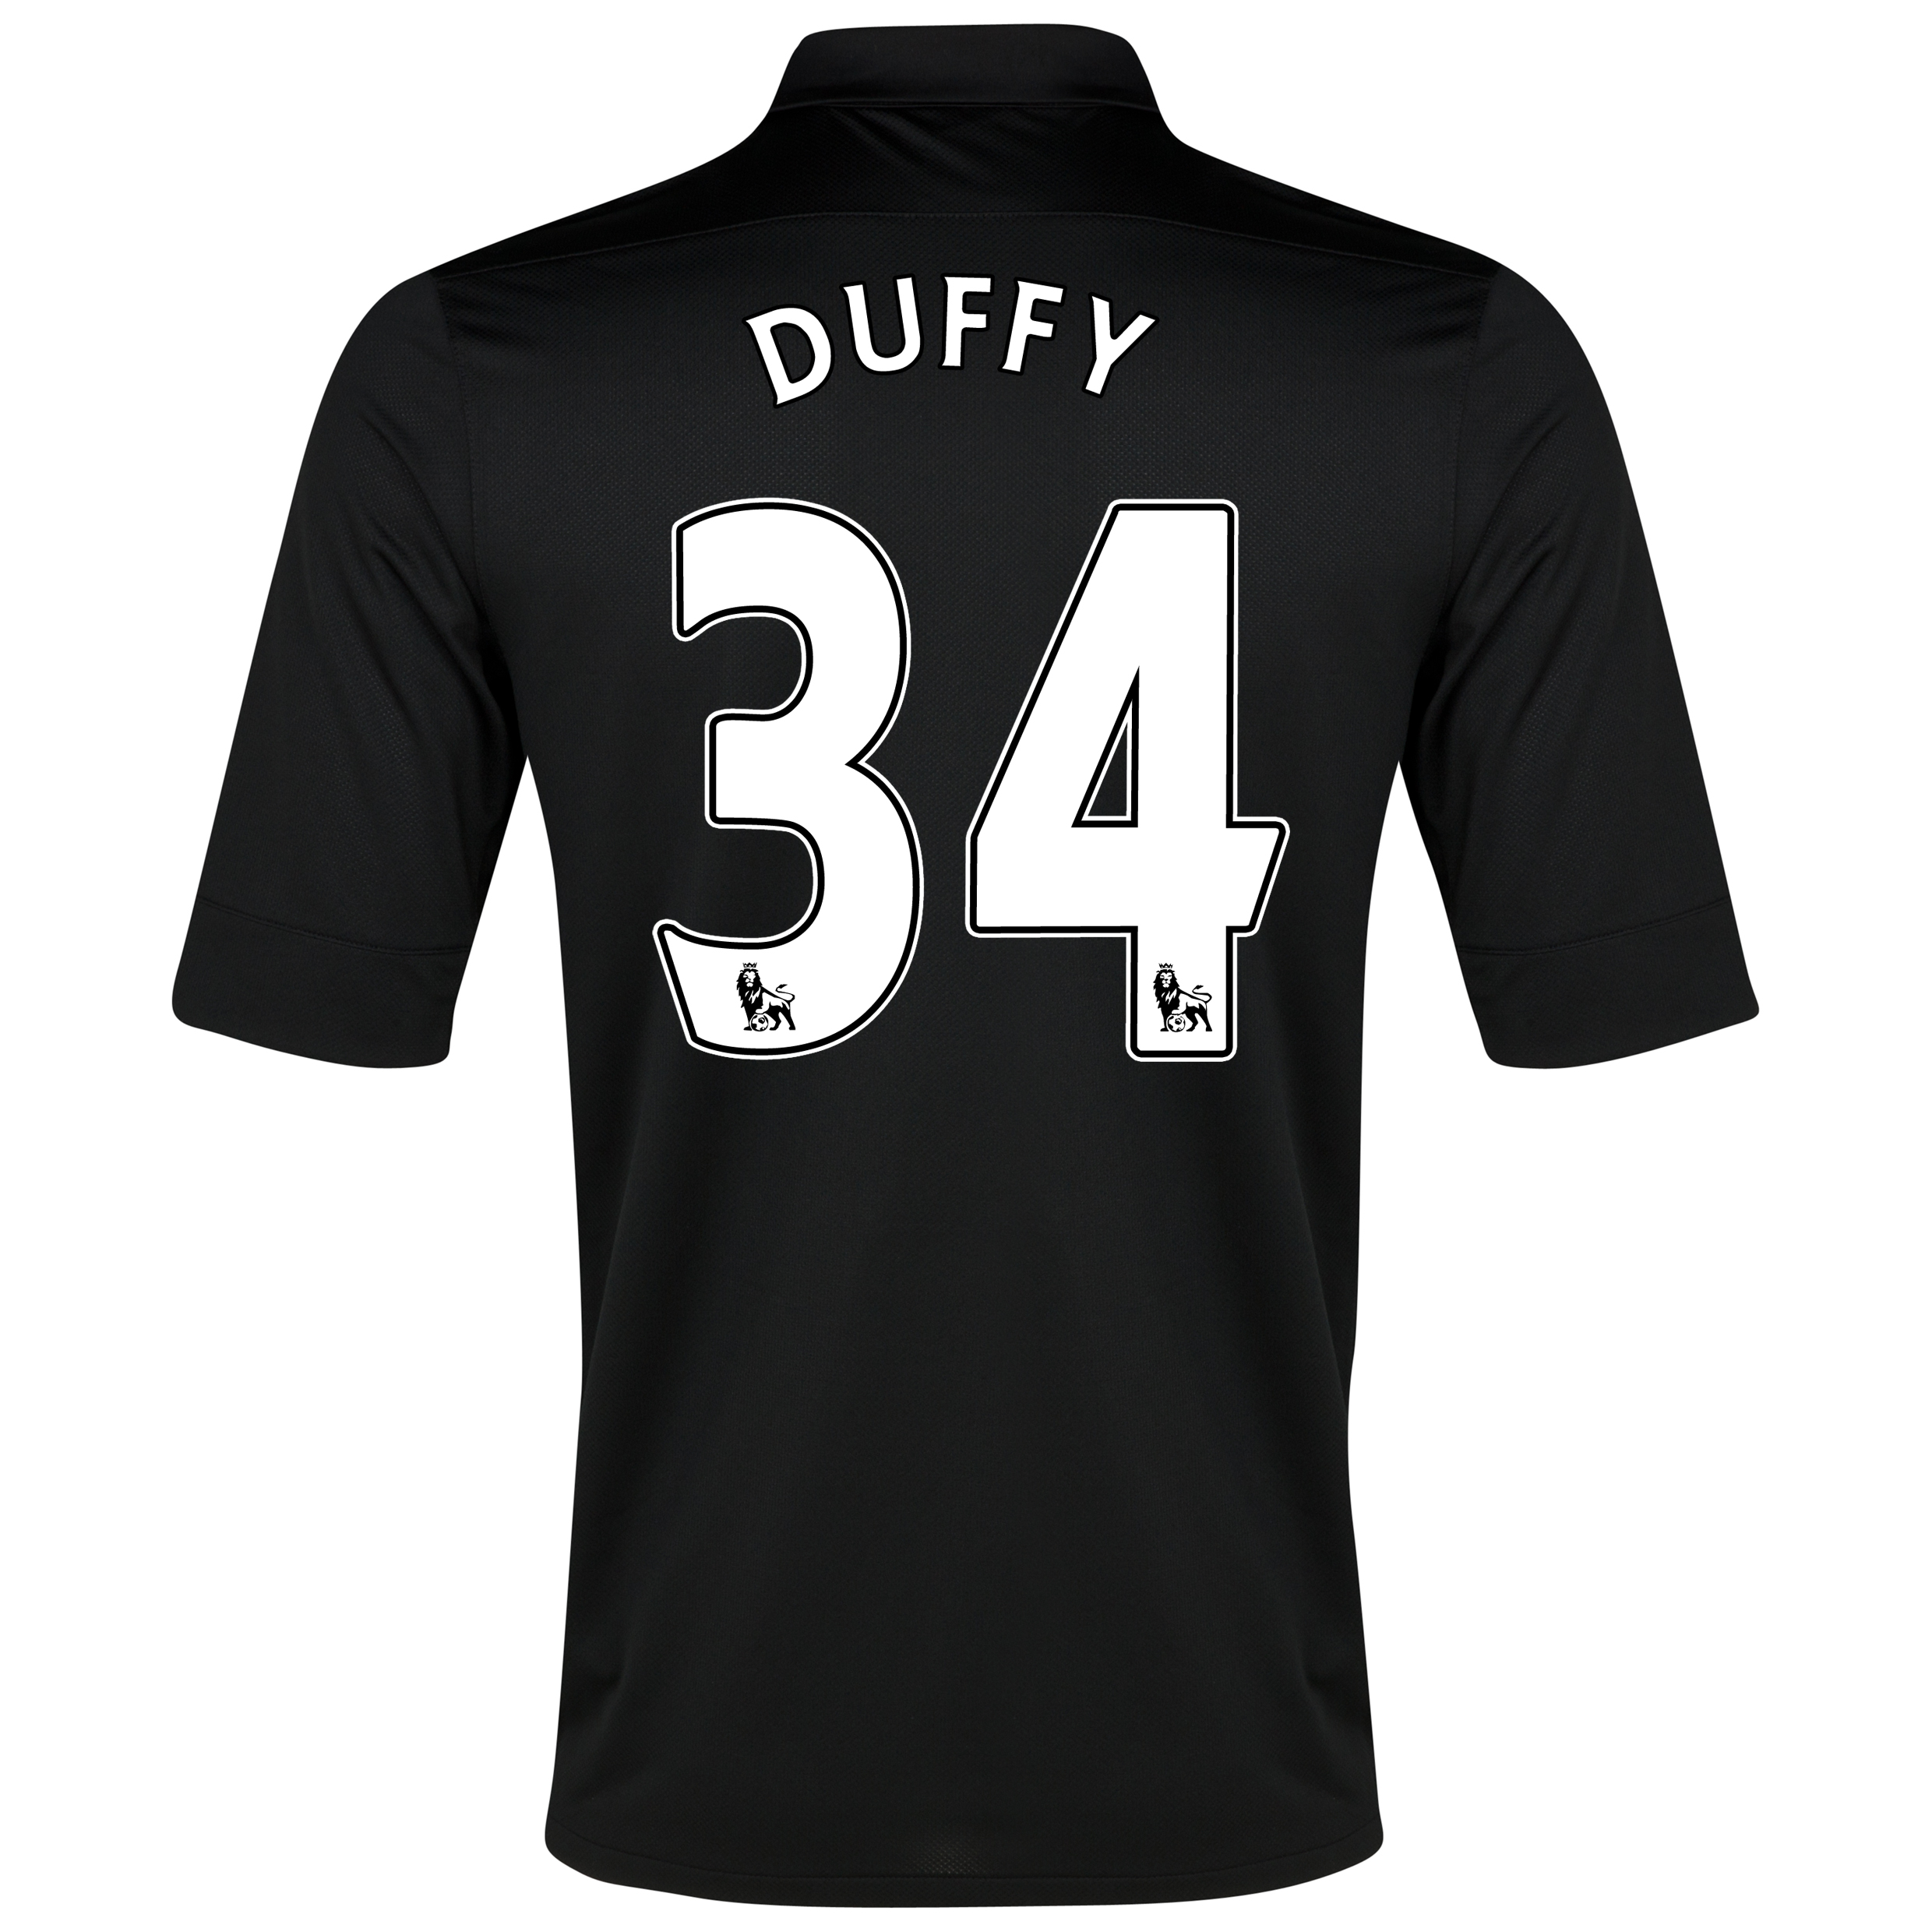 Everton Away Shirt 2012/13 with Duffy 34 printing